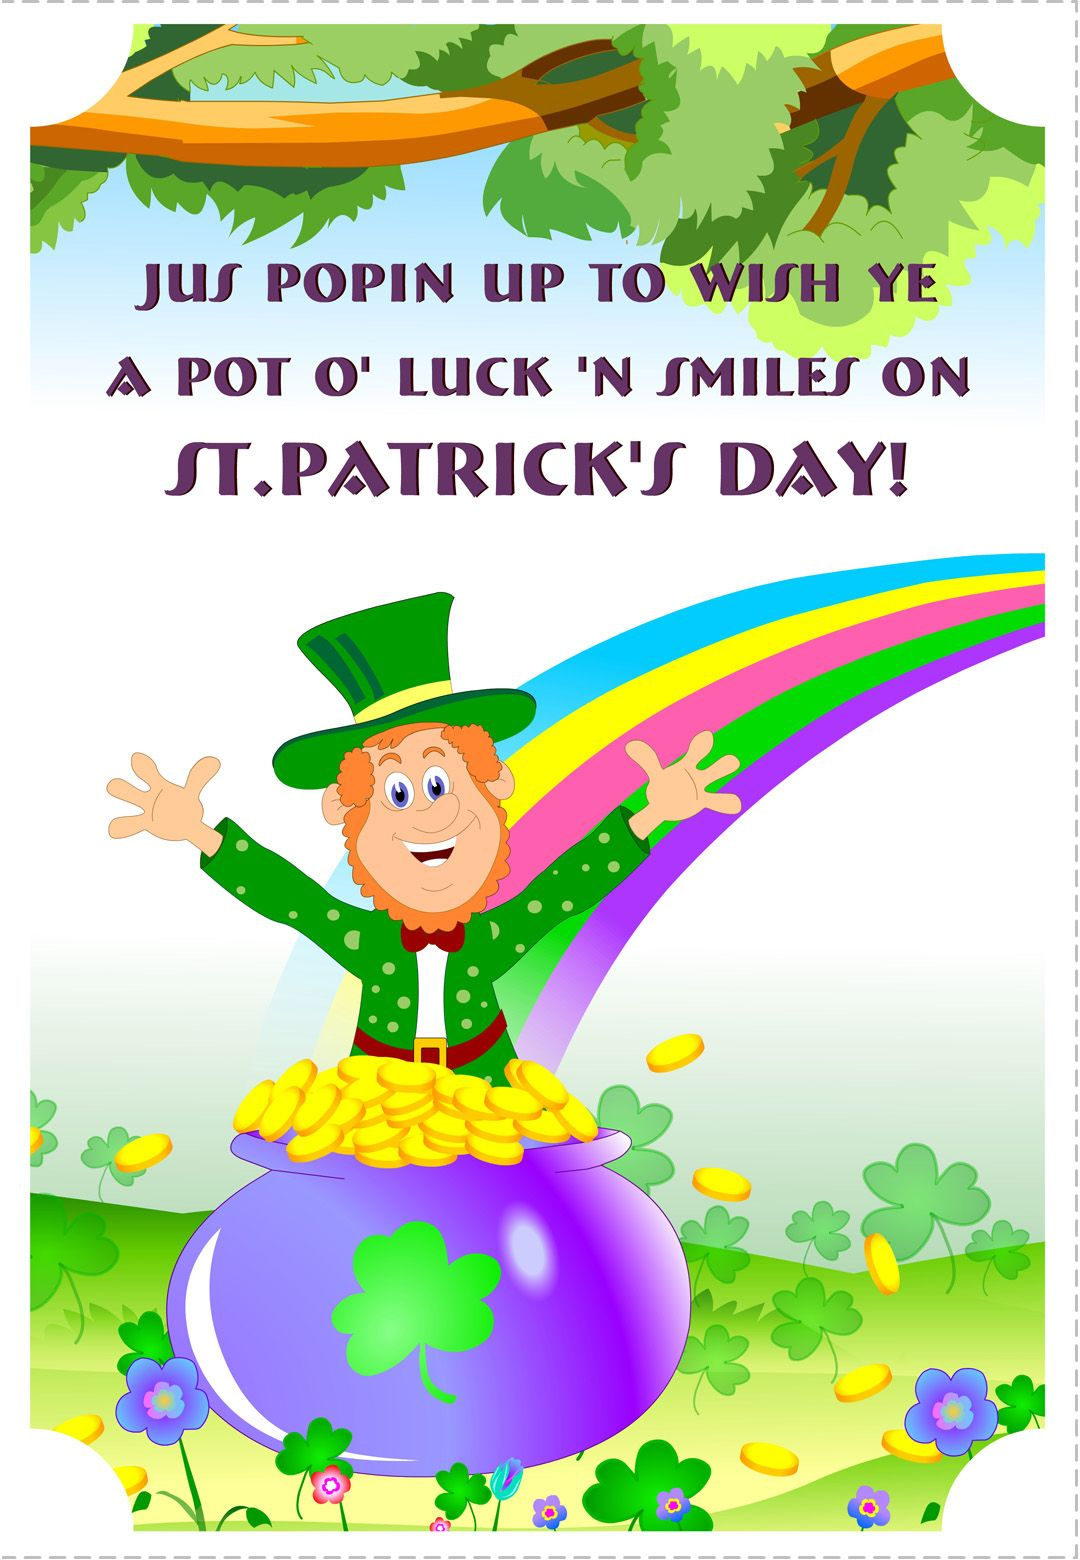 graphic about St Patrick's Day Cards Free Printable called Free of charge Printable A Pot Of Luck St Patricks Greeting Card